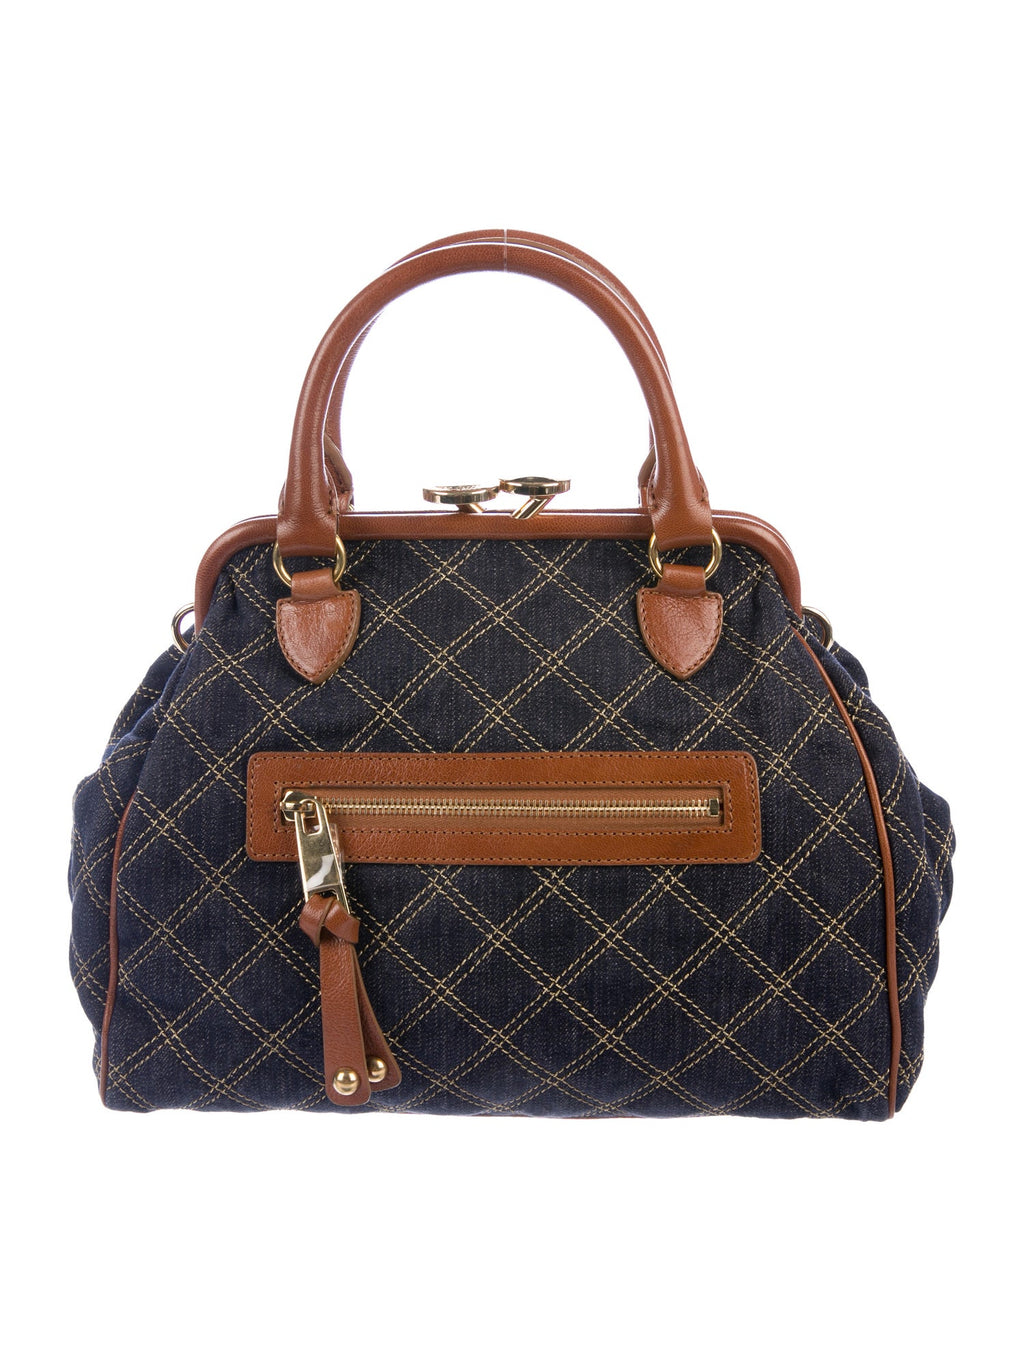 Marc Jacobs Vintage Denim-Leather Stam Bag